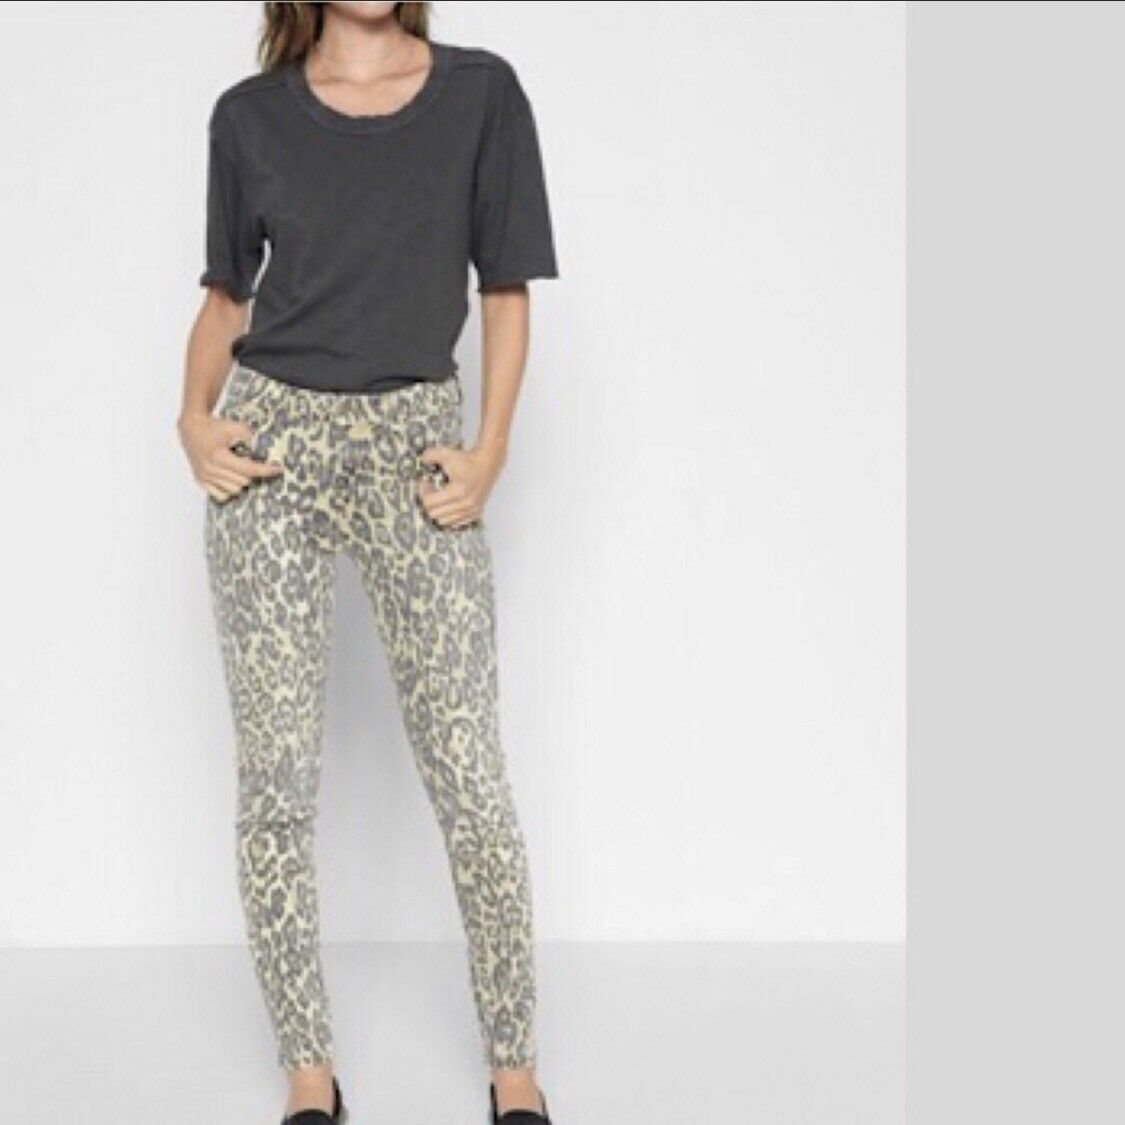 NWT Seven for all Mankind Lux Brand Ankle Skinny Jeans Cheetah Print Sz 32  199